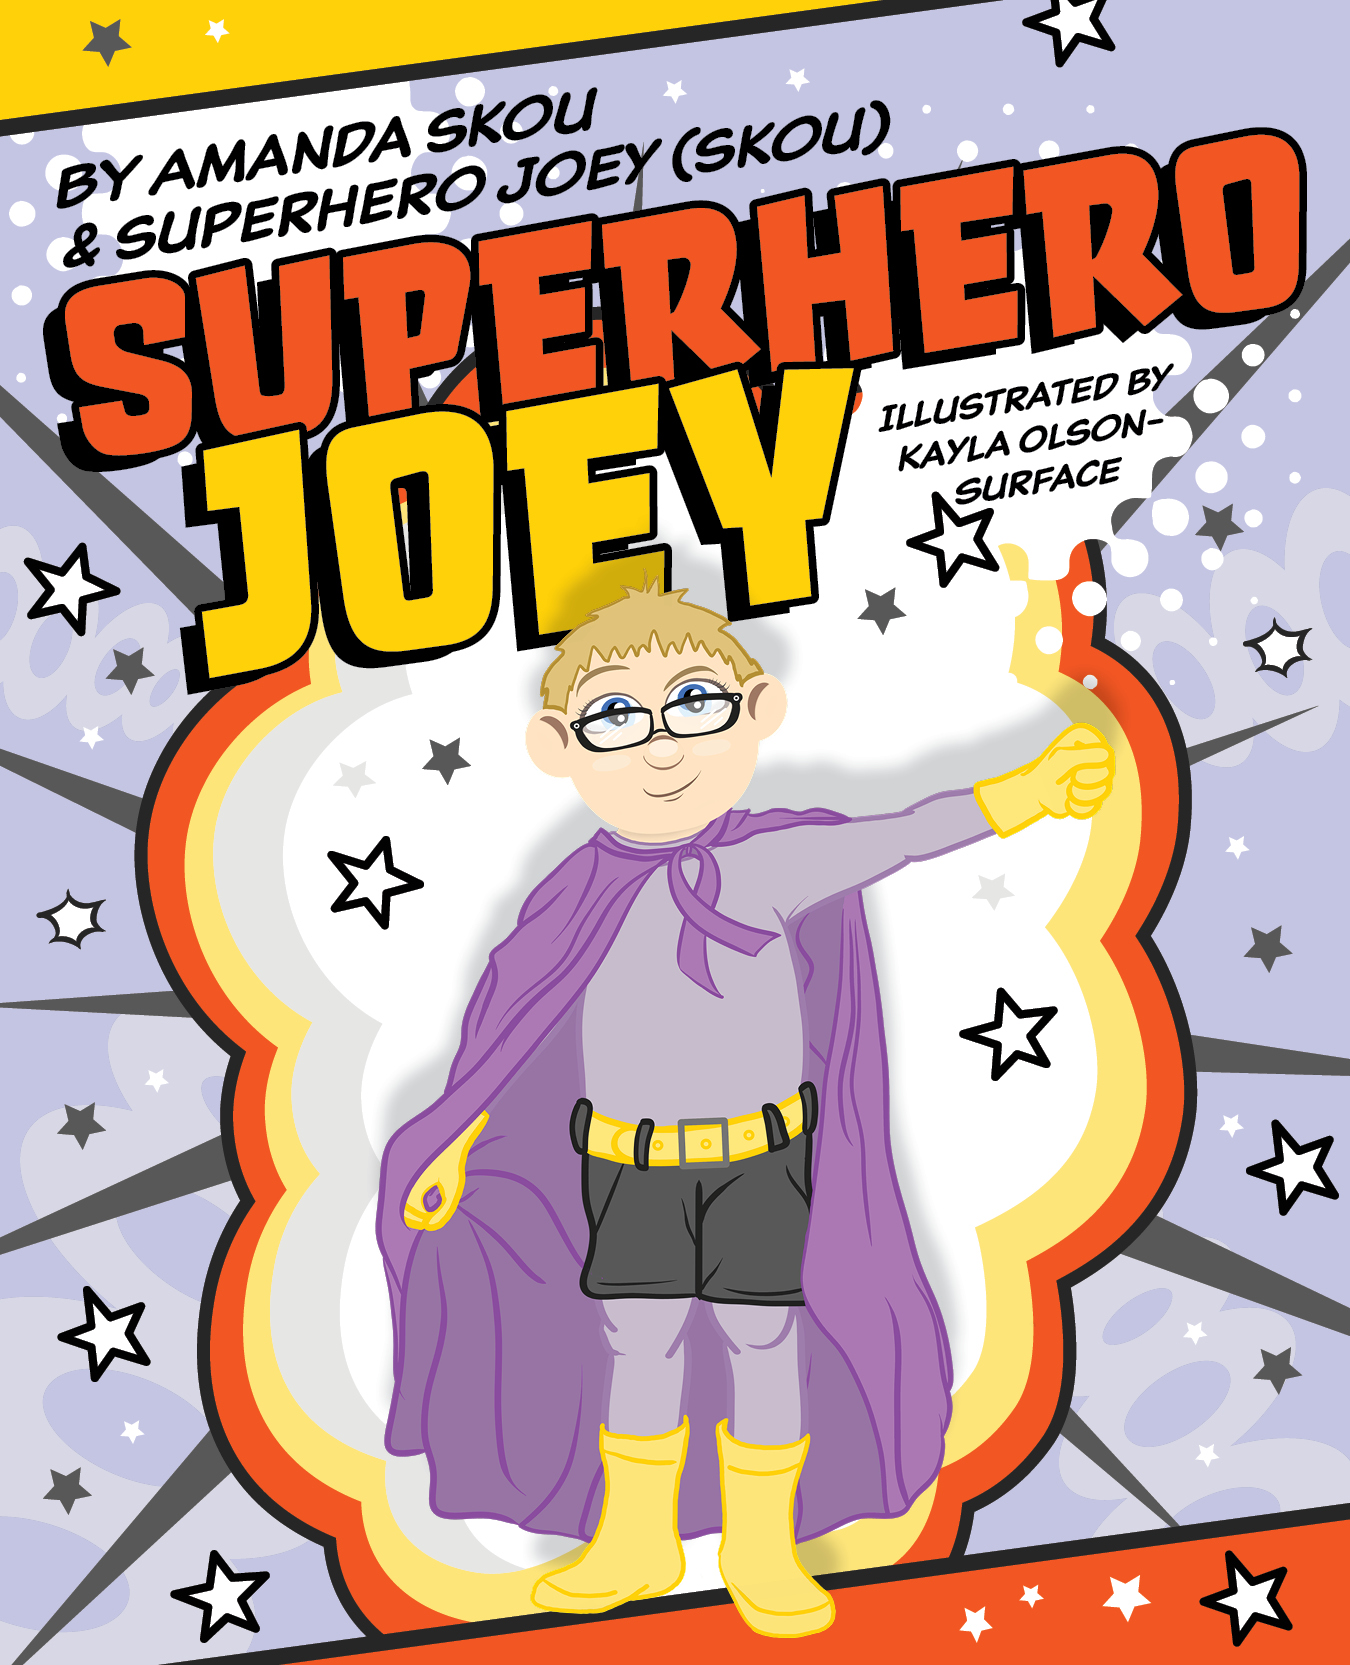 Superhero Joey